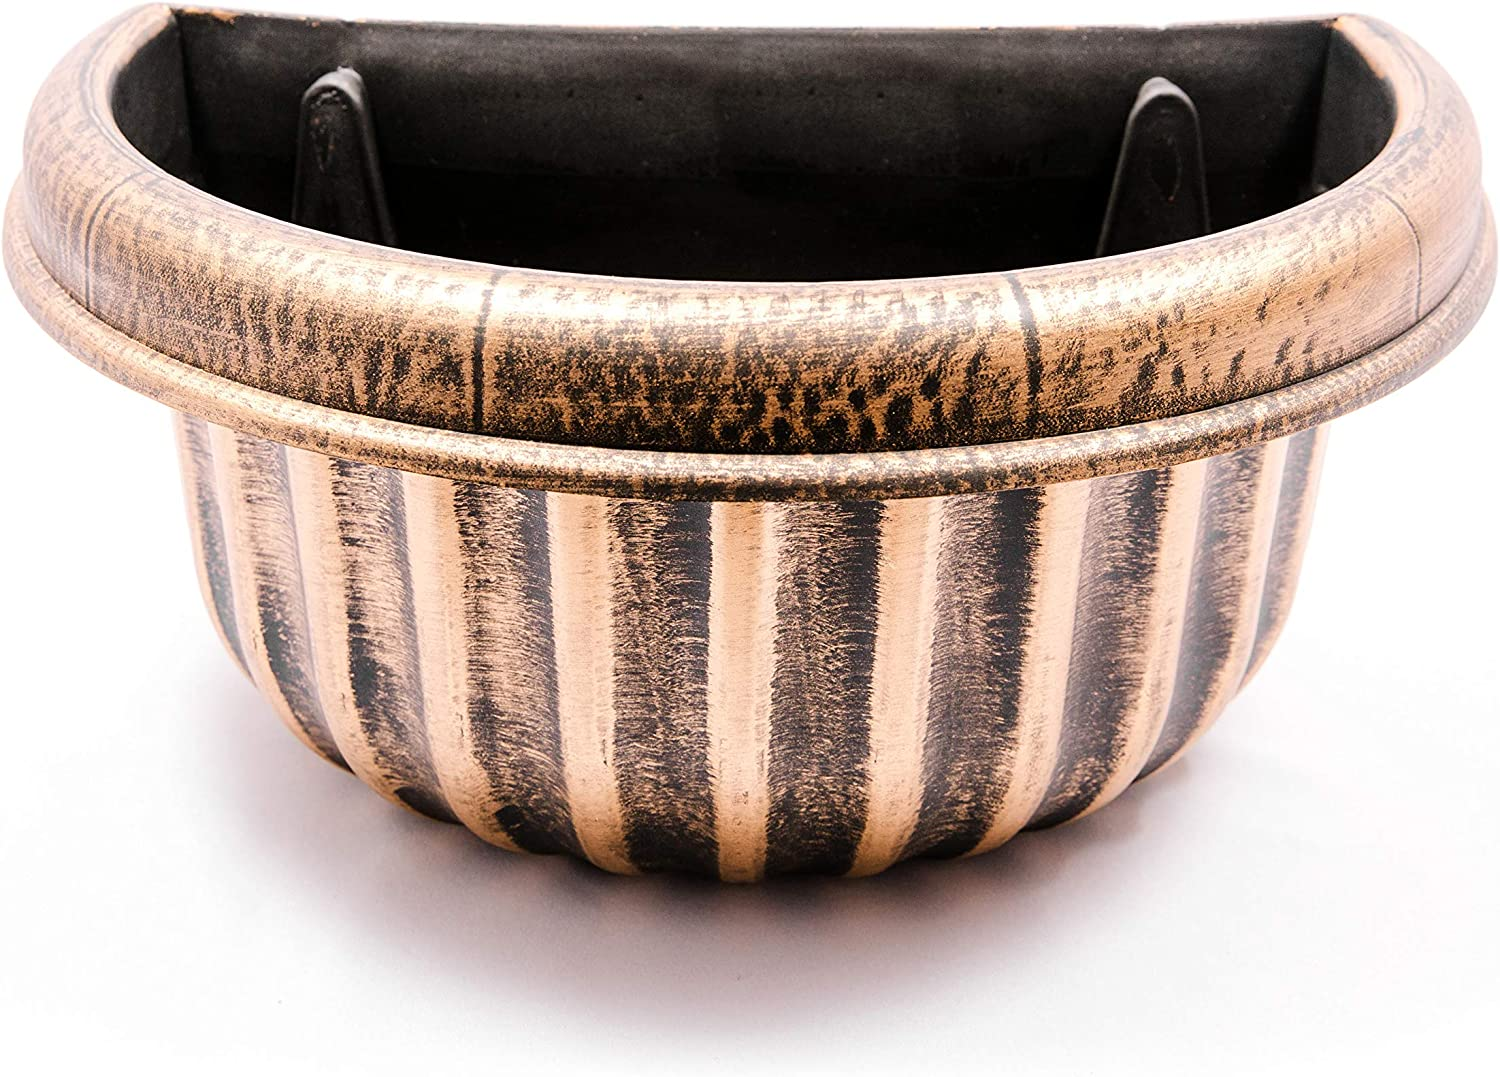 Semicircle Combo Base/Wall Planter Rustic French Country Look Plastic Planter for Indoor, Outdoor, Garden, Patio, Office Ornaments, Home Decor, Long Lasting, Lightweight (Wall 14